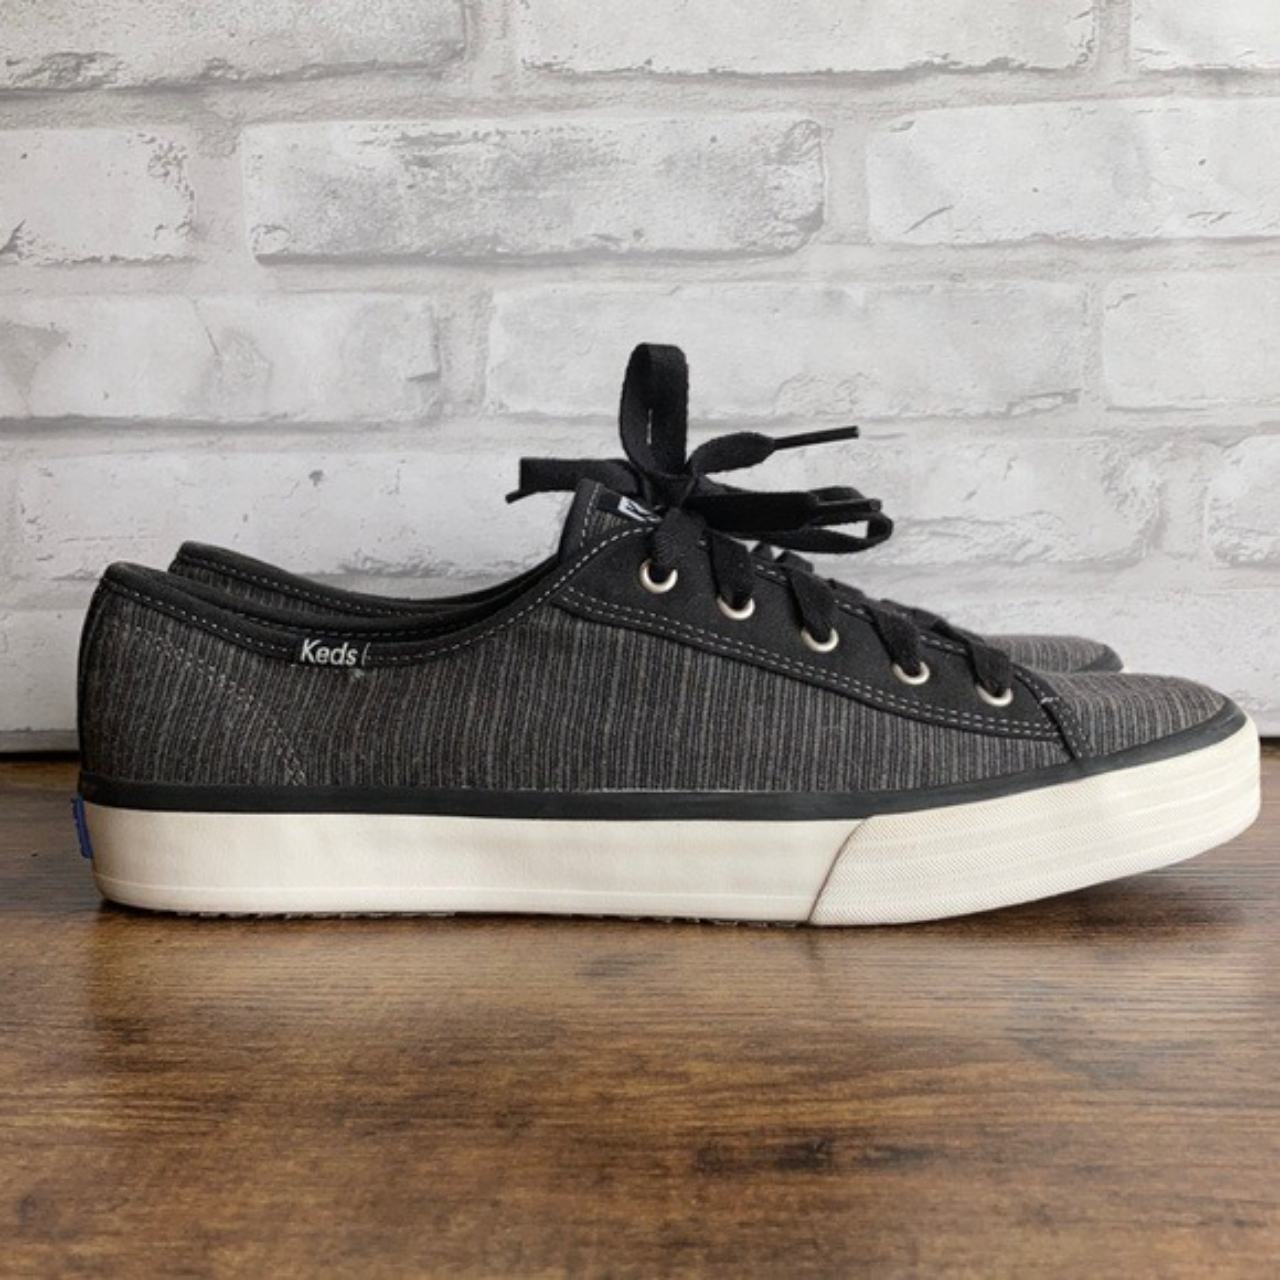 Product Image 1 - Keds Black Striped Canvas Sneaker